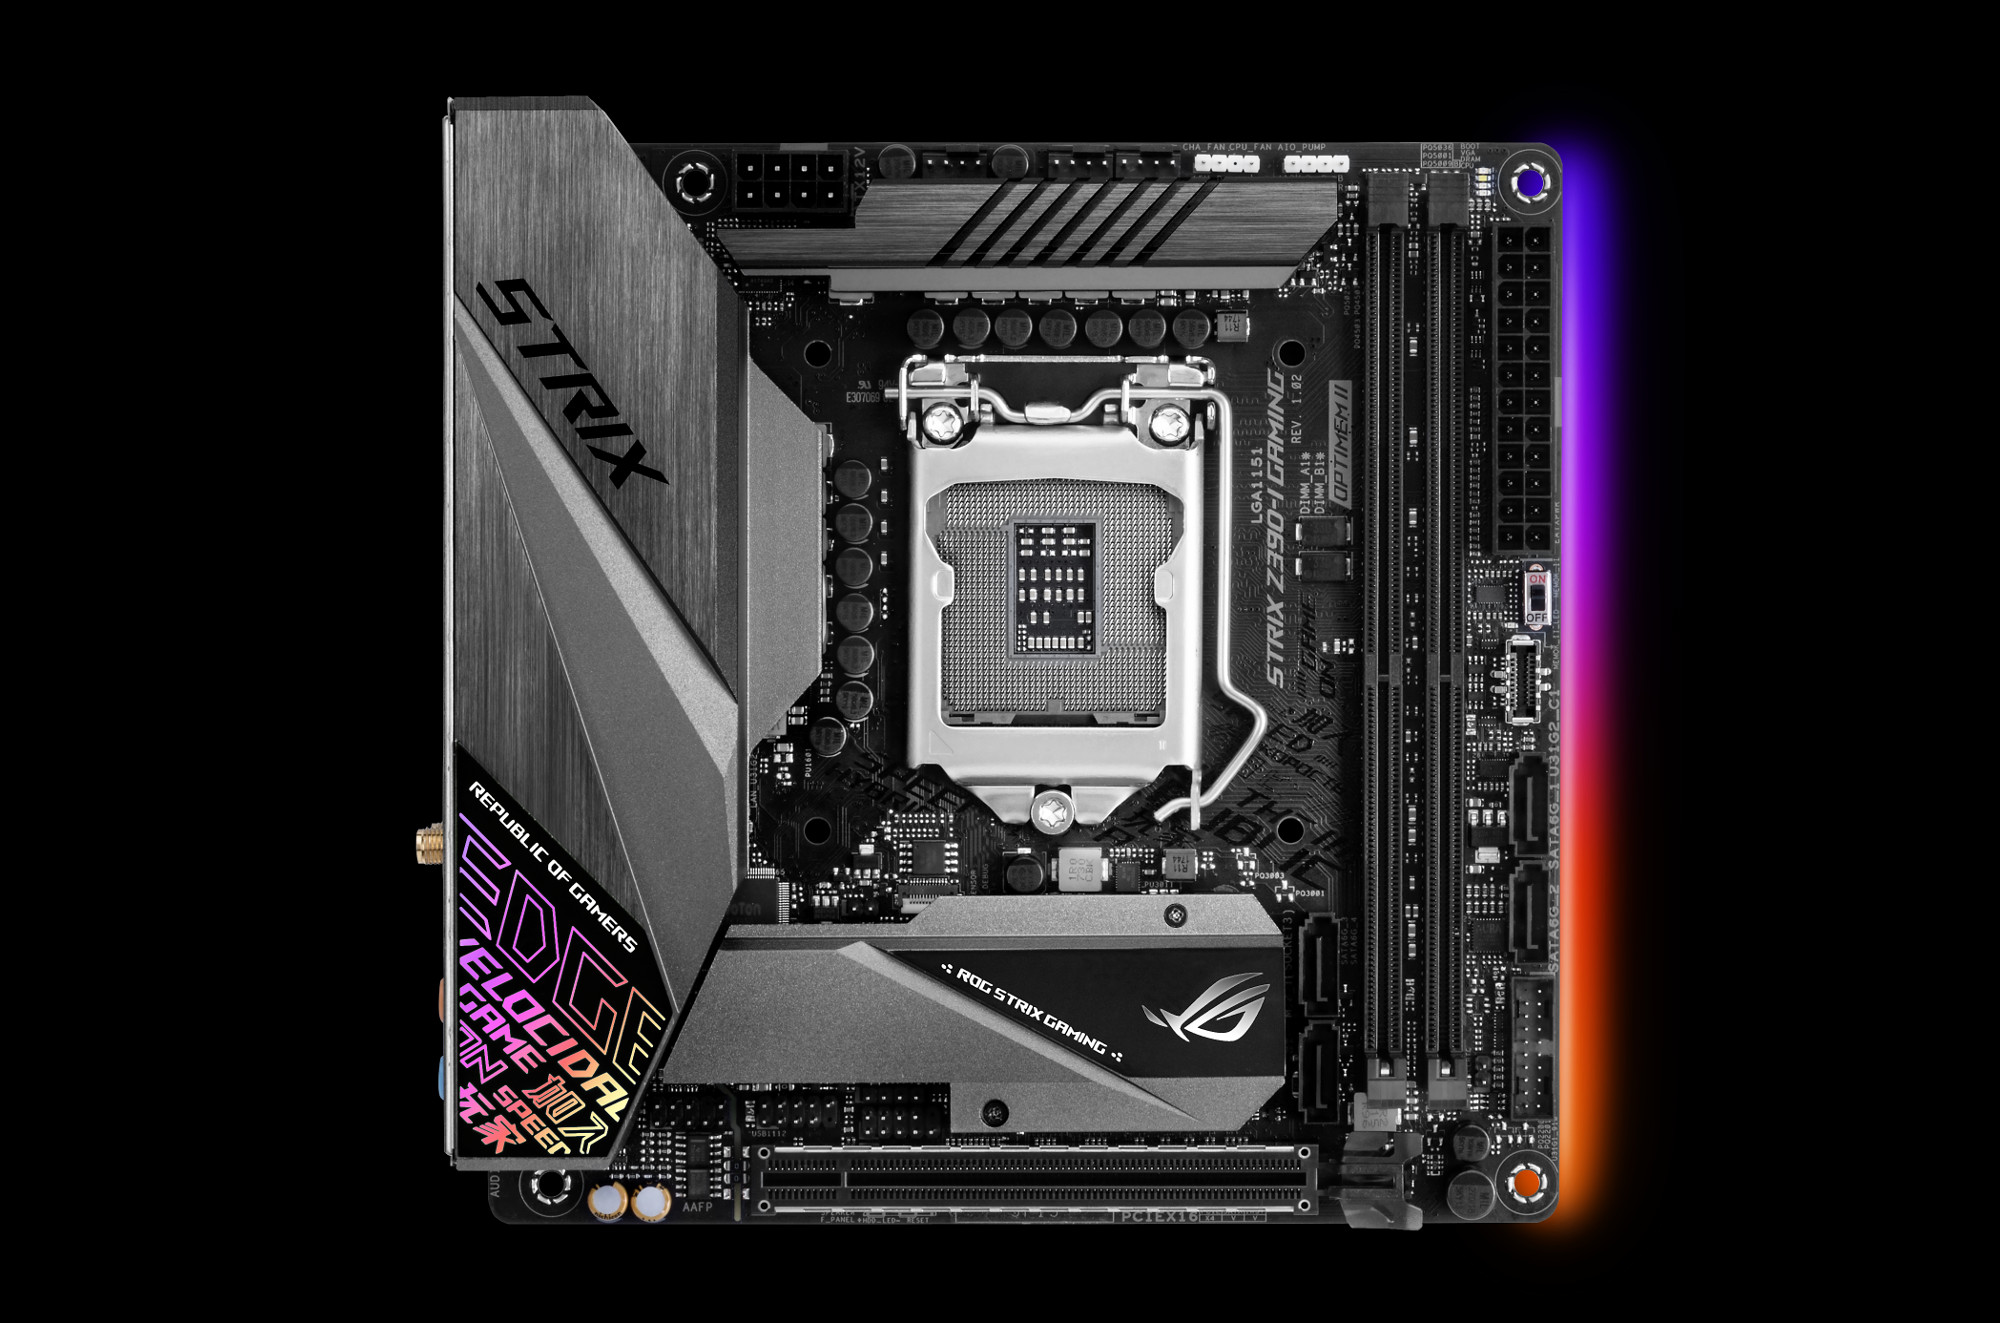 Introducing Rog Maximus And Strix Z390 Gaming Motherboards For 8 3w Led Typically They Are Mounted On A Heatsink If You Intend To With The Right Modules Can Hit Up Ddr4 4600 Speeds Fewer Slots Would Normally Limit Memory Capacity As Well But Support Double Dimms